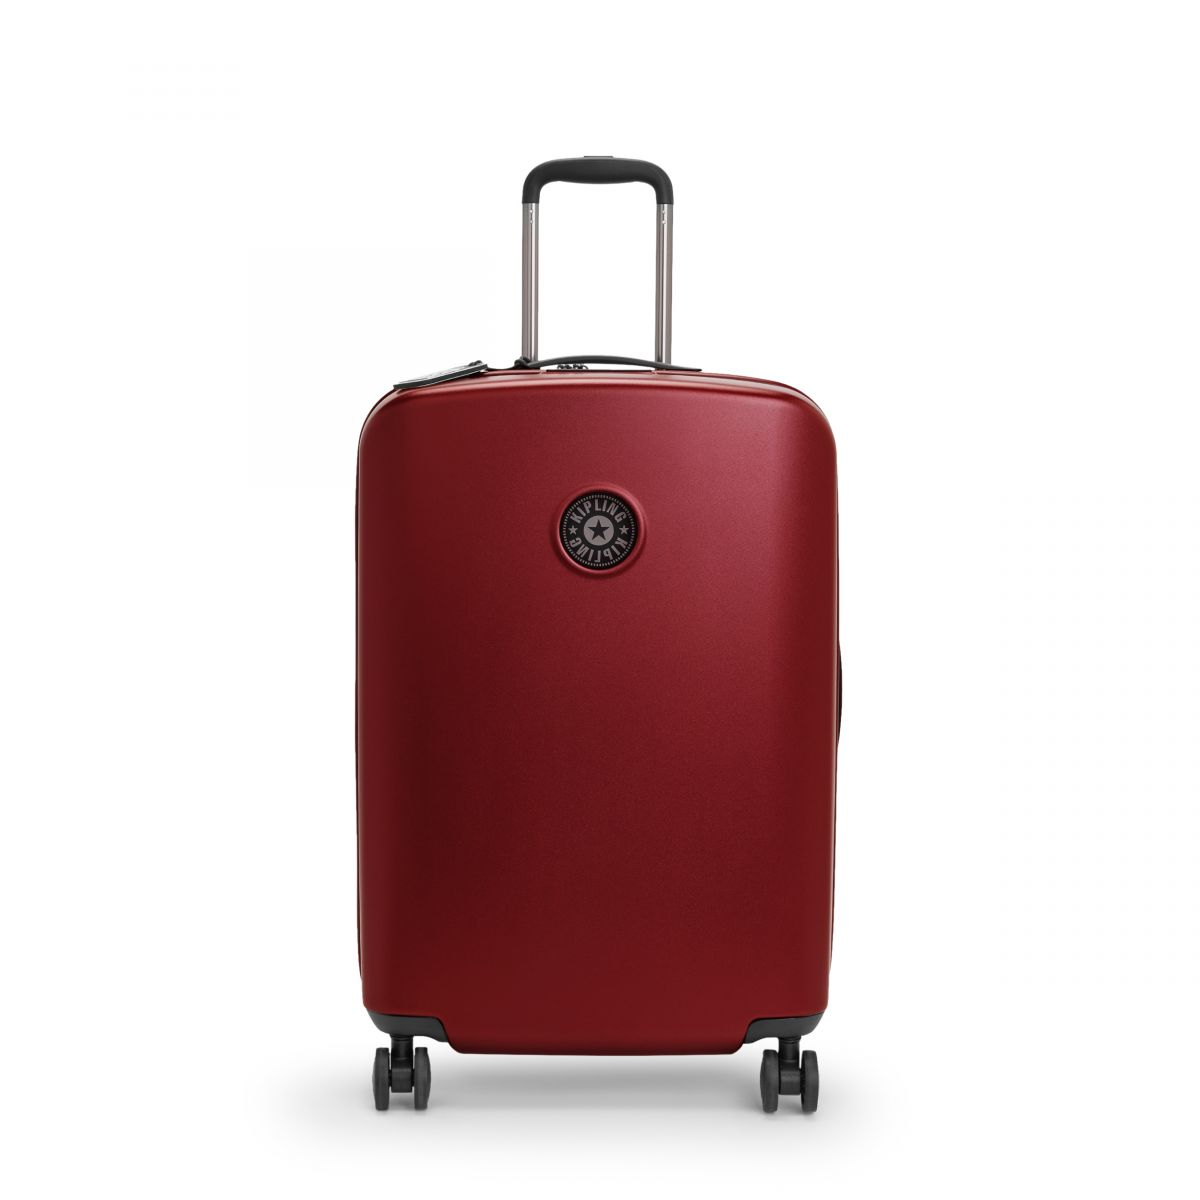 CURIOSITY M LUGGAGE by Kipling - Front view